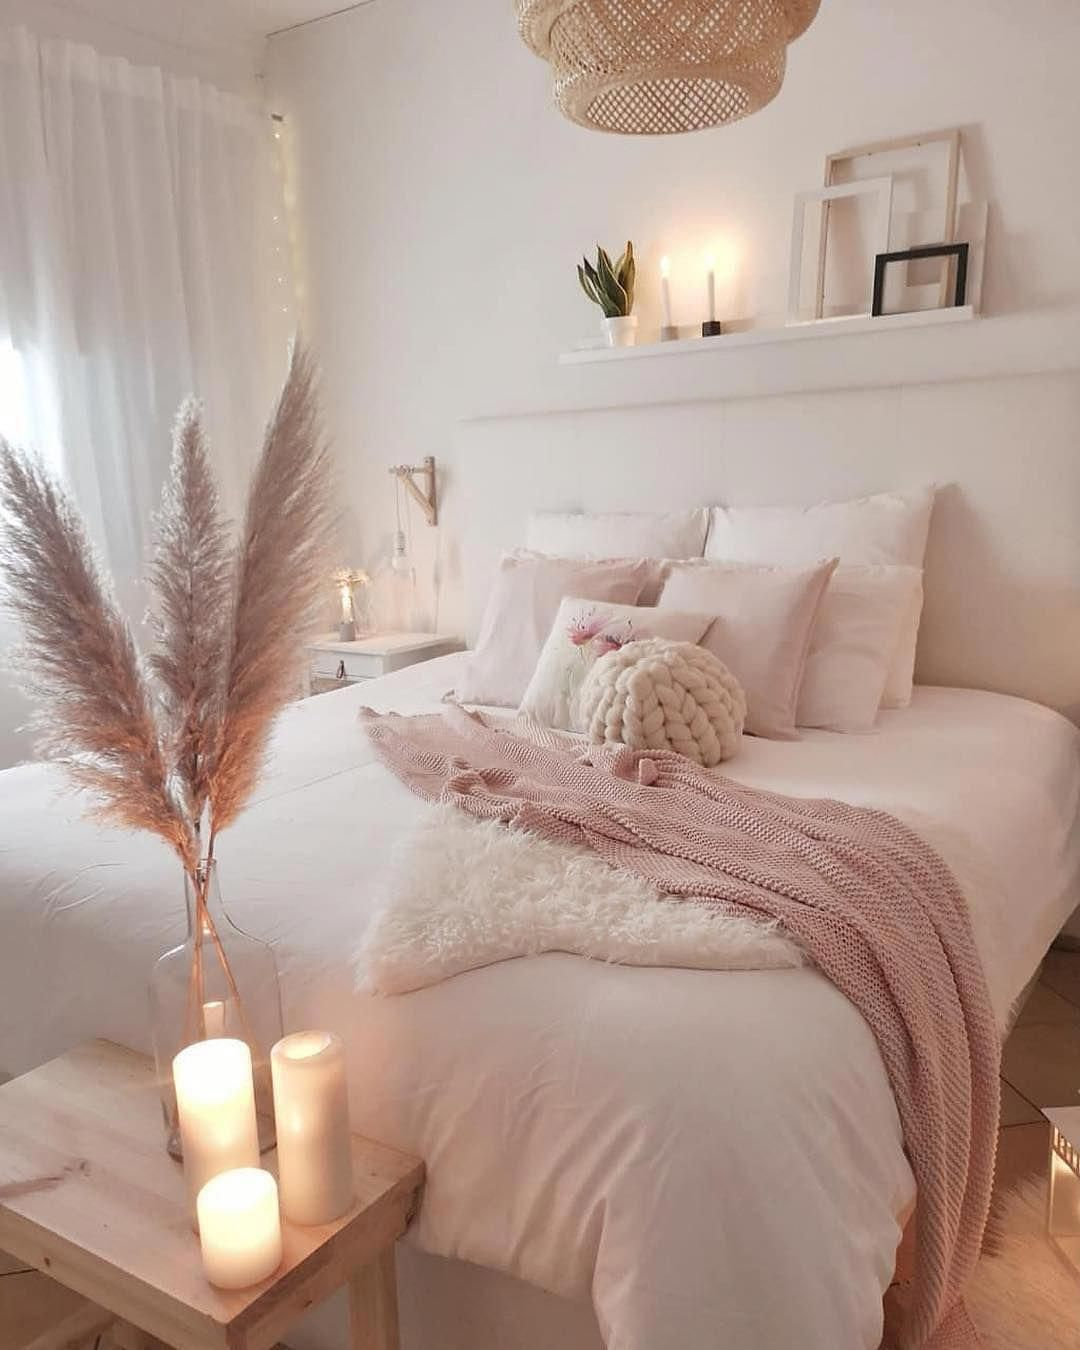 Bedroom ideas for down-to-earth to quite a exciting space